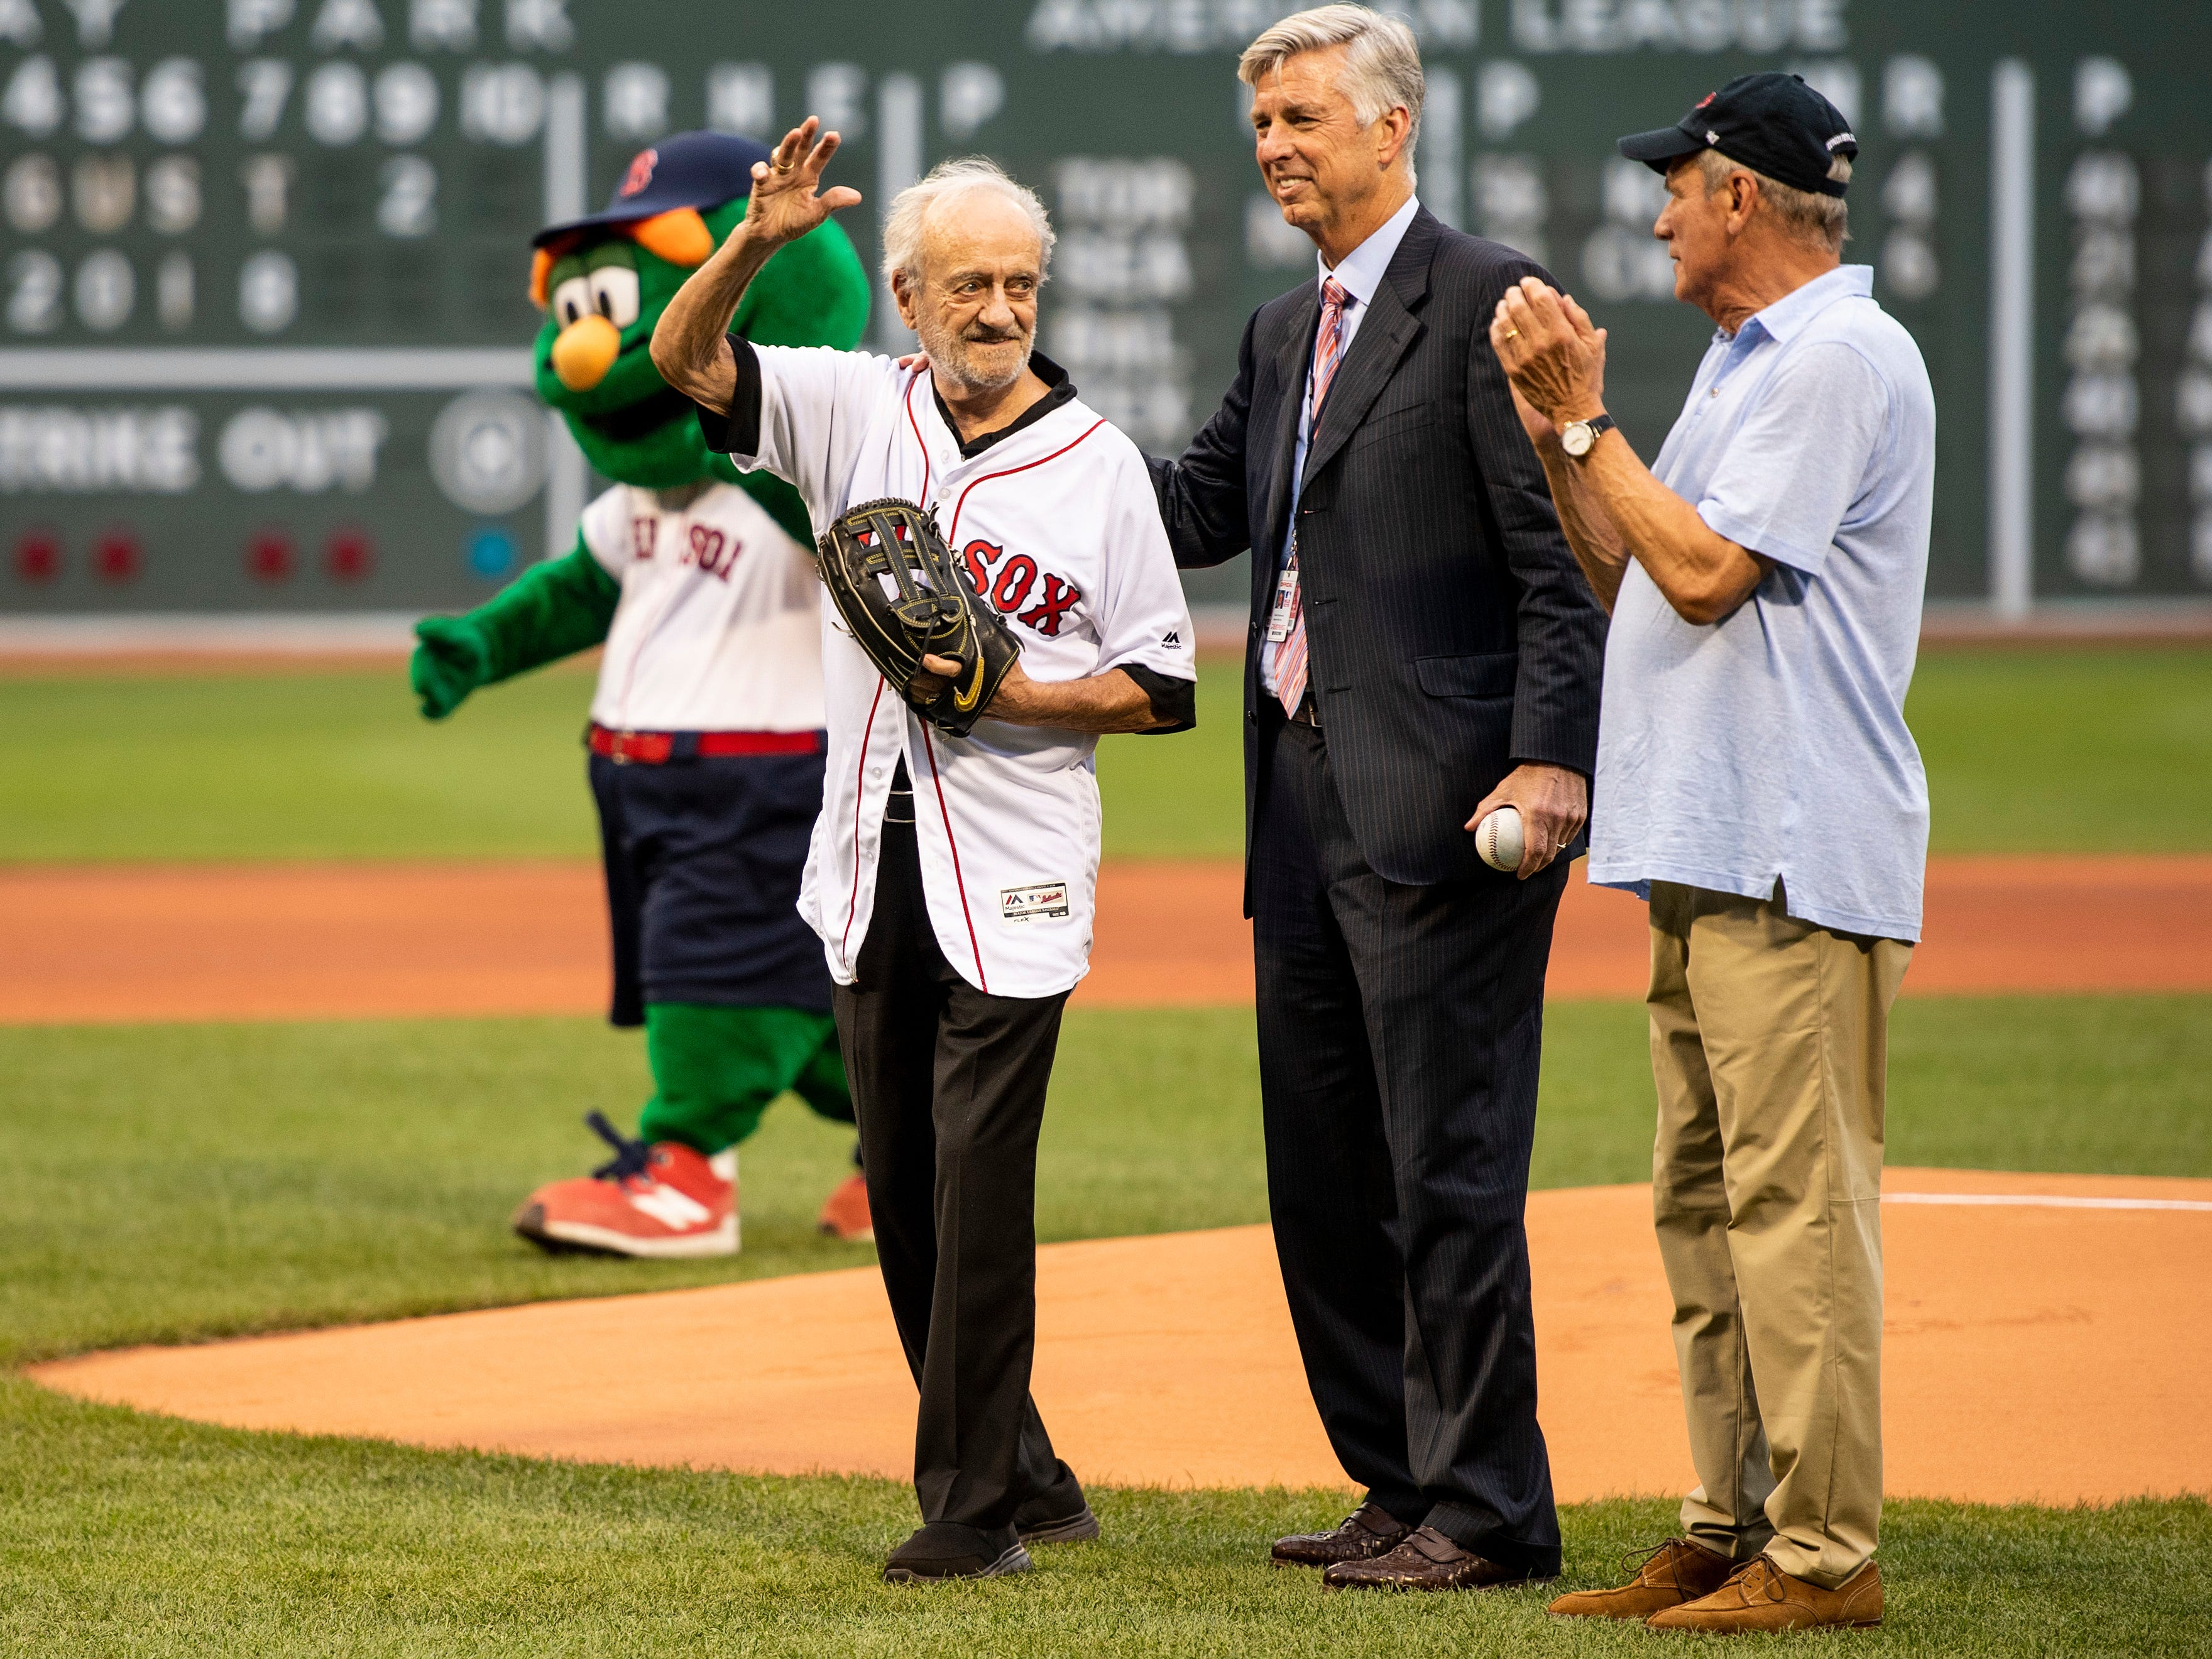 BOSTON, MA - AUGUST 2: Major League Baseball Executive Roland Hemond is introduced alongside Boston Red Sox President & CEO Emeritus Larry Lucchino and Boston Red Sox President of Baseball Operations Dave Dombrowski before throwing out the ceremonial first pitch before a game between the Boston Red Sox and the New York Yankees on August 2, 2018 at Fenway Park in Boston, Massachusetts. (Photo by Billie Weiss/Boston Red Sox/Getty Images) *** Local Caption *** Roland Hemond; Dave Dombrowski; Larry Lucchino